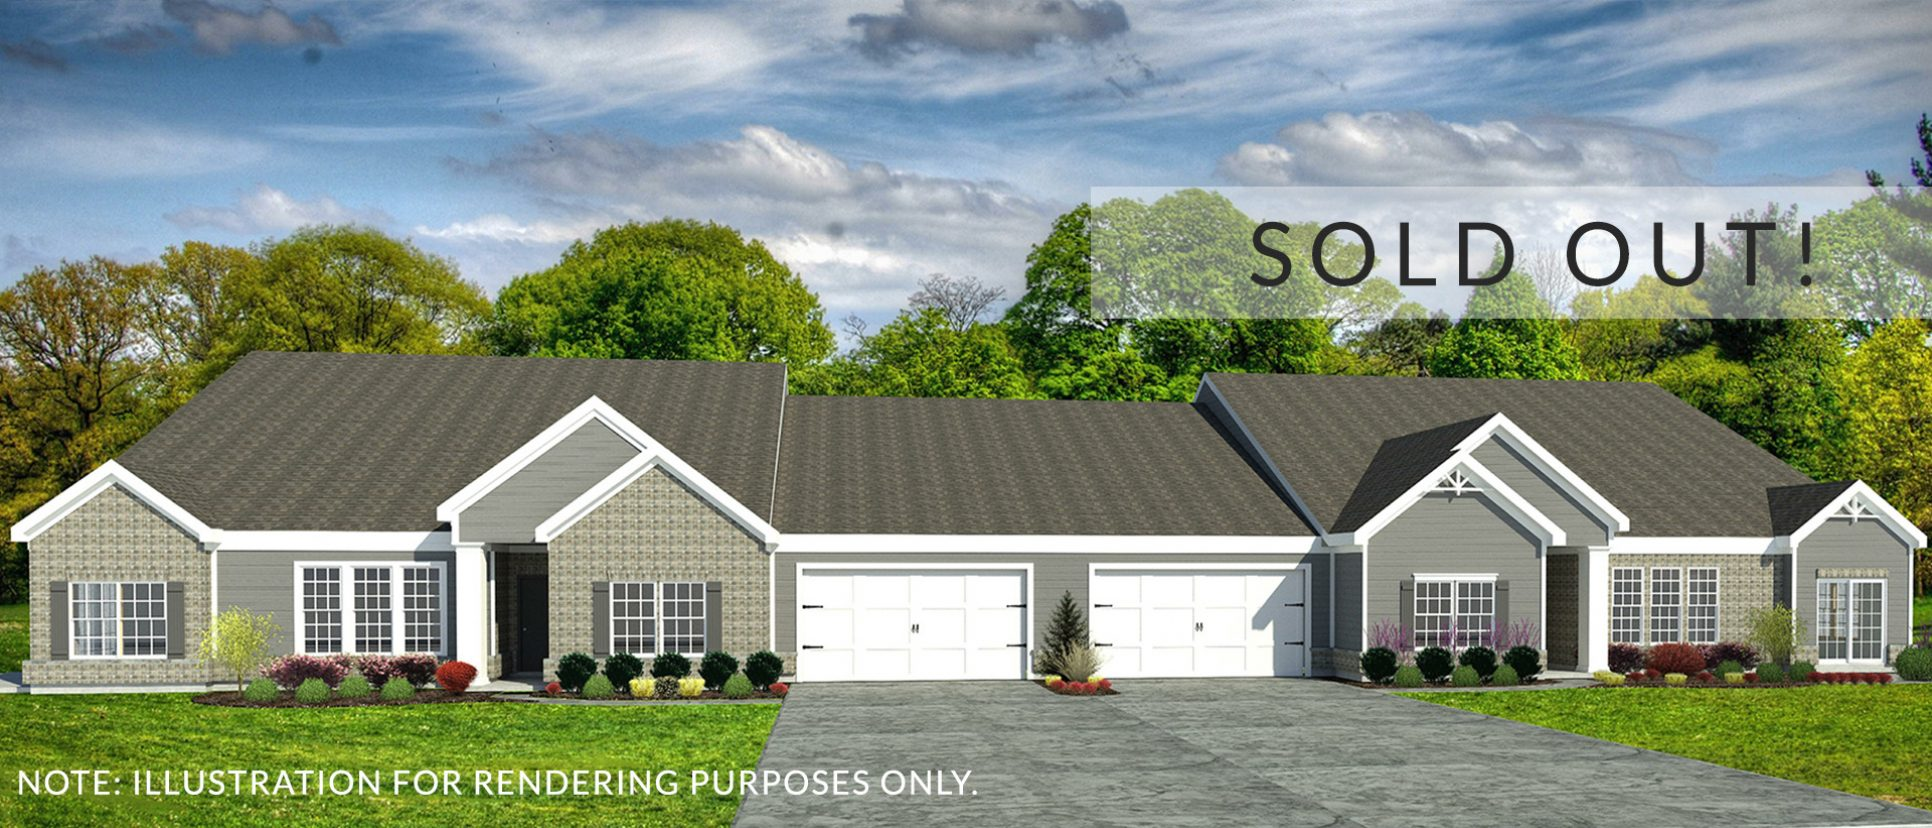 Rendering of the Custom Abbingtons. A set of condos in Soraya Farms by Design Homes and Development.